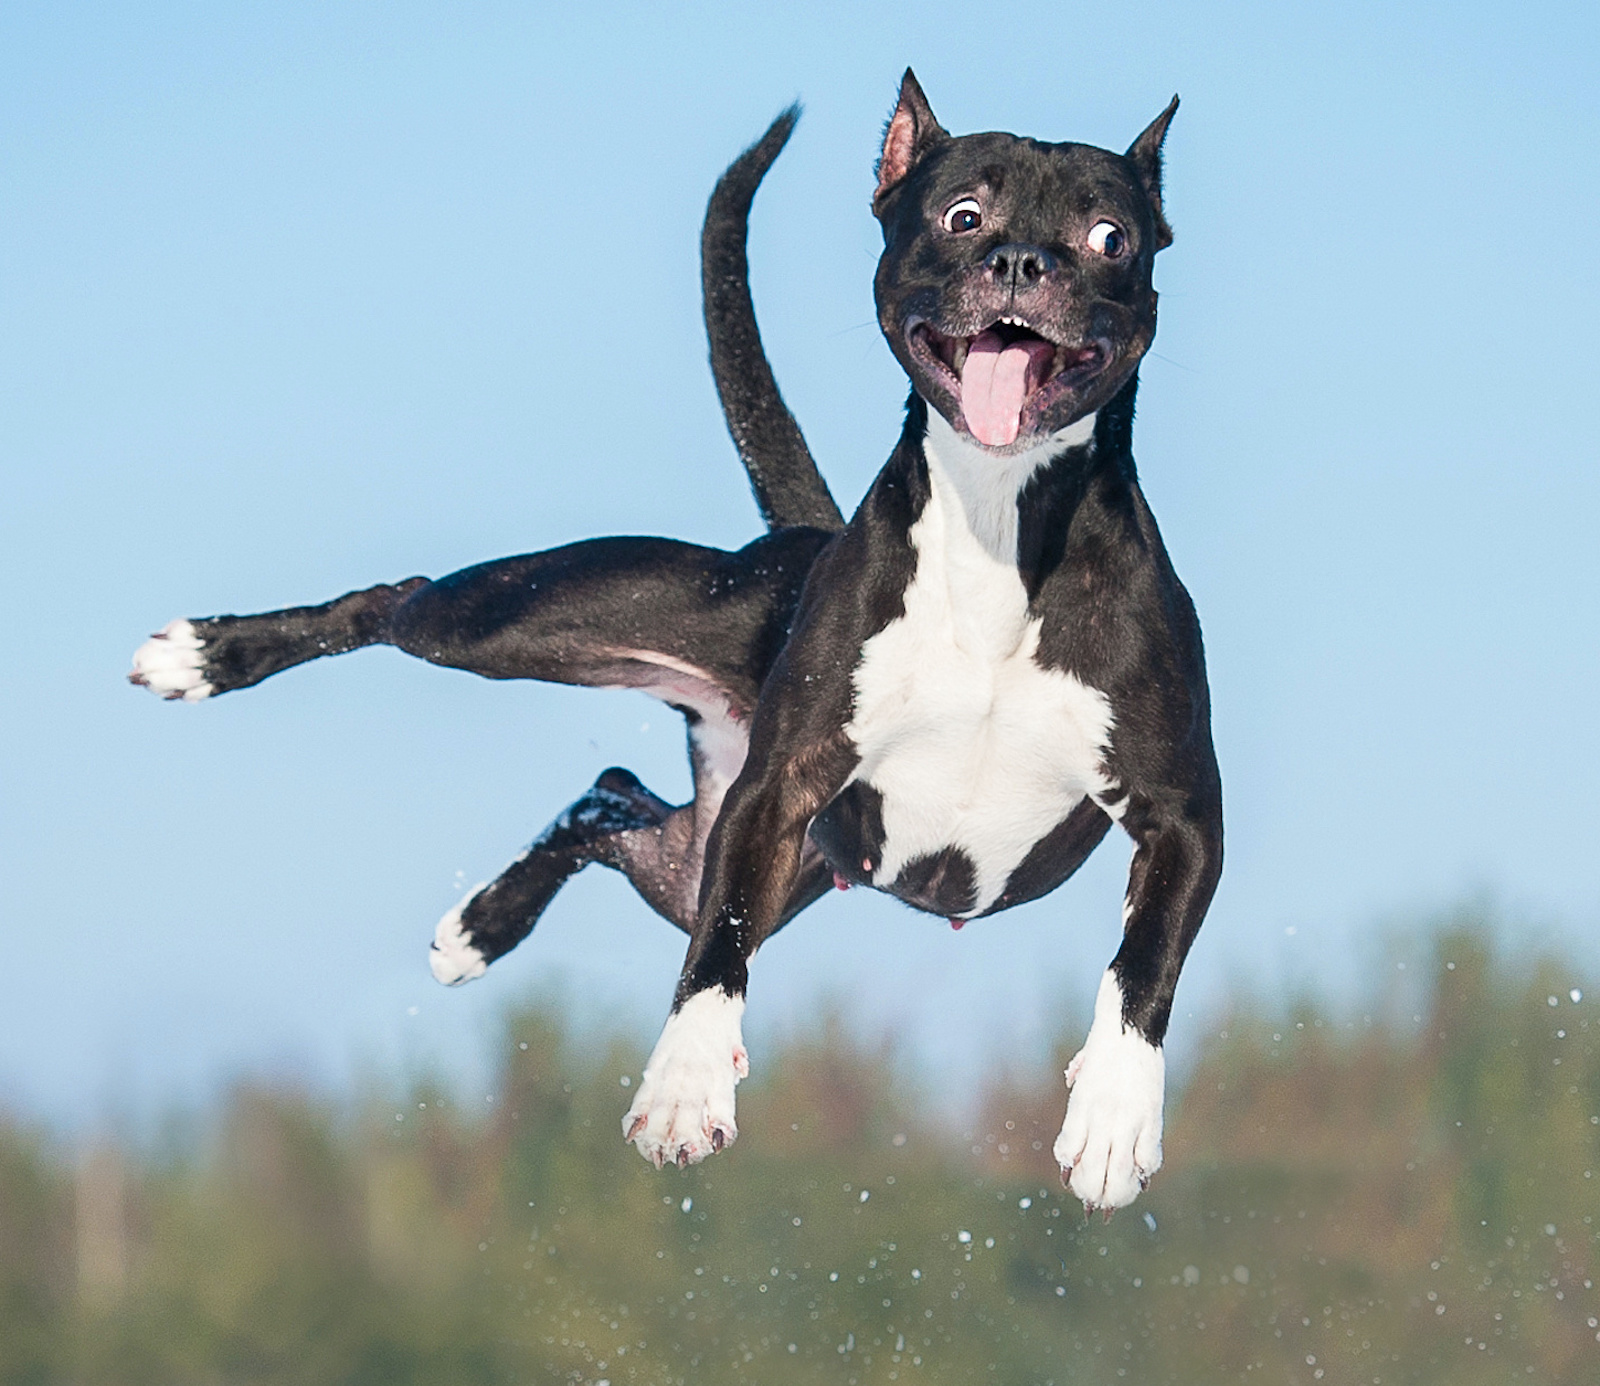 crazy dog in mid air